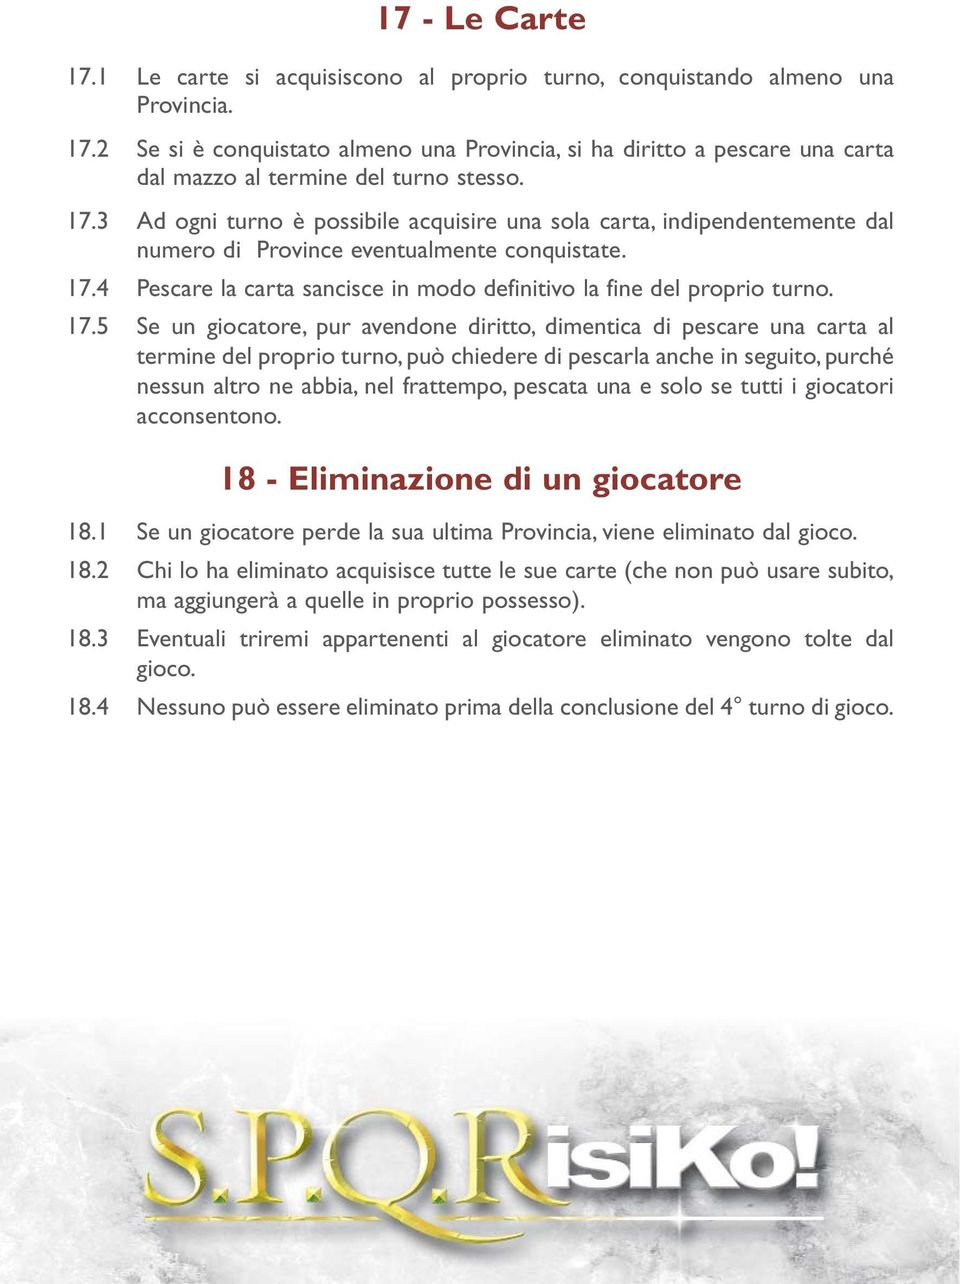 4 Pescare la carta sancisce in modo definitivo la fine del proprio turno. 17.